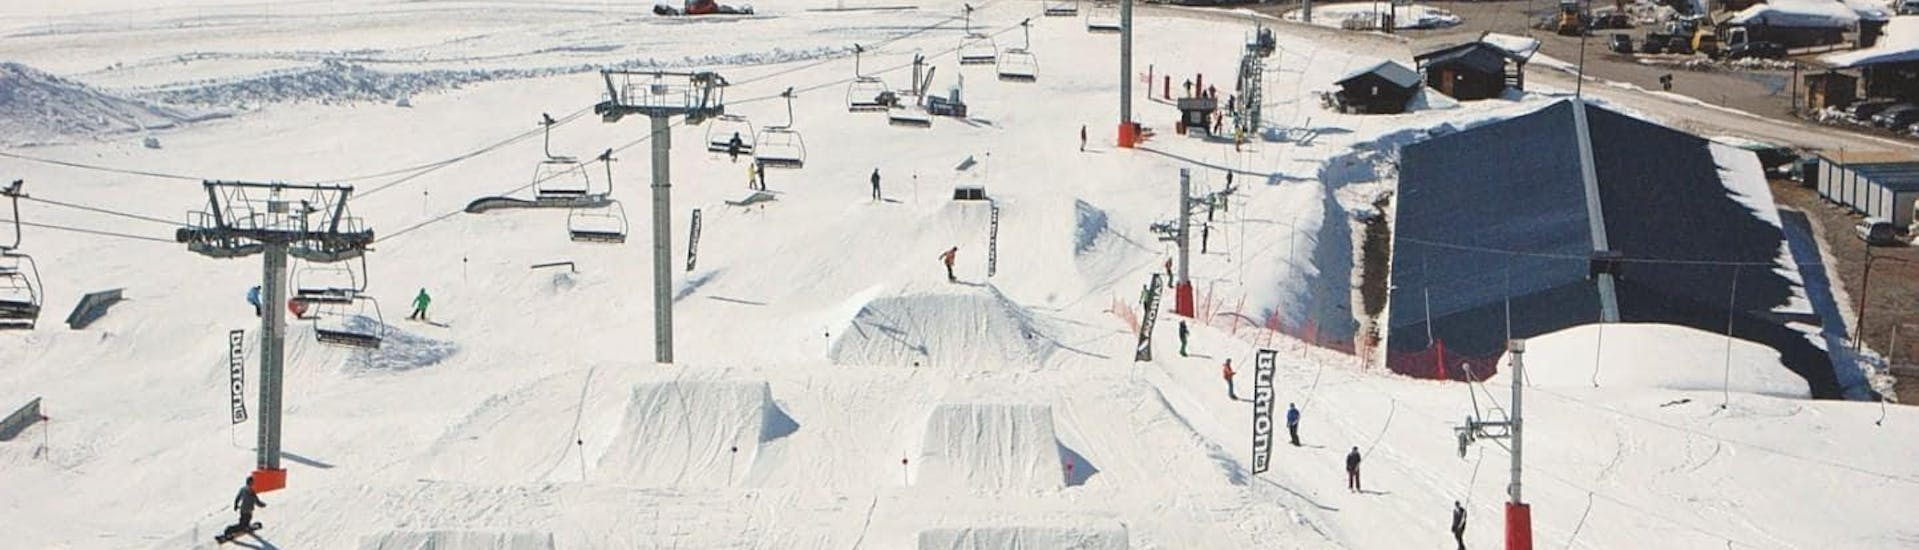 A view of the slopes in the Swiss ski resort Champéry where the ski school Red Carpet Champéry offer ski lessons.